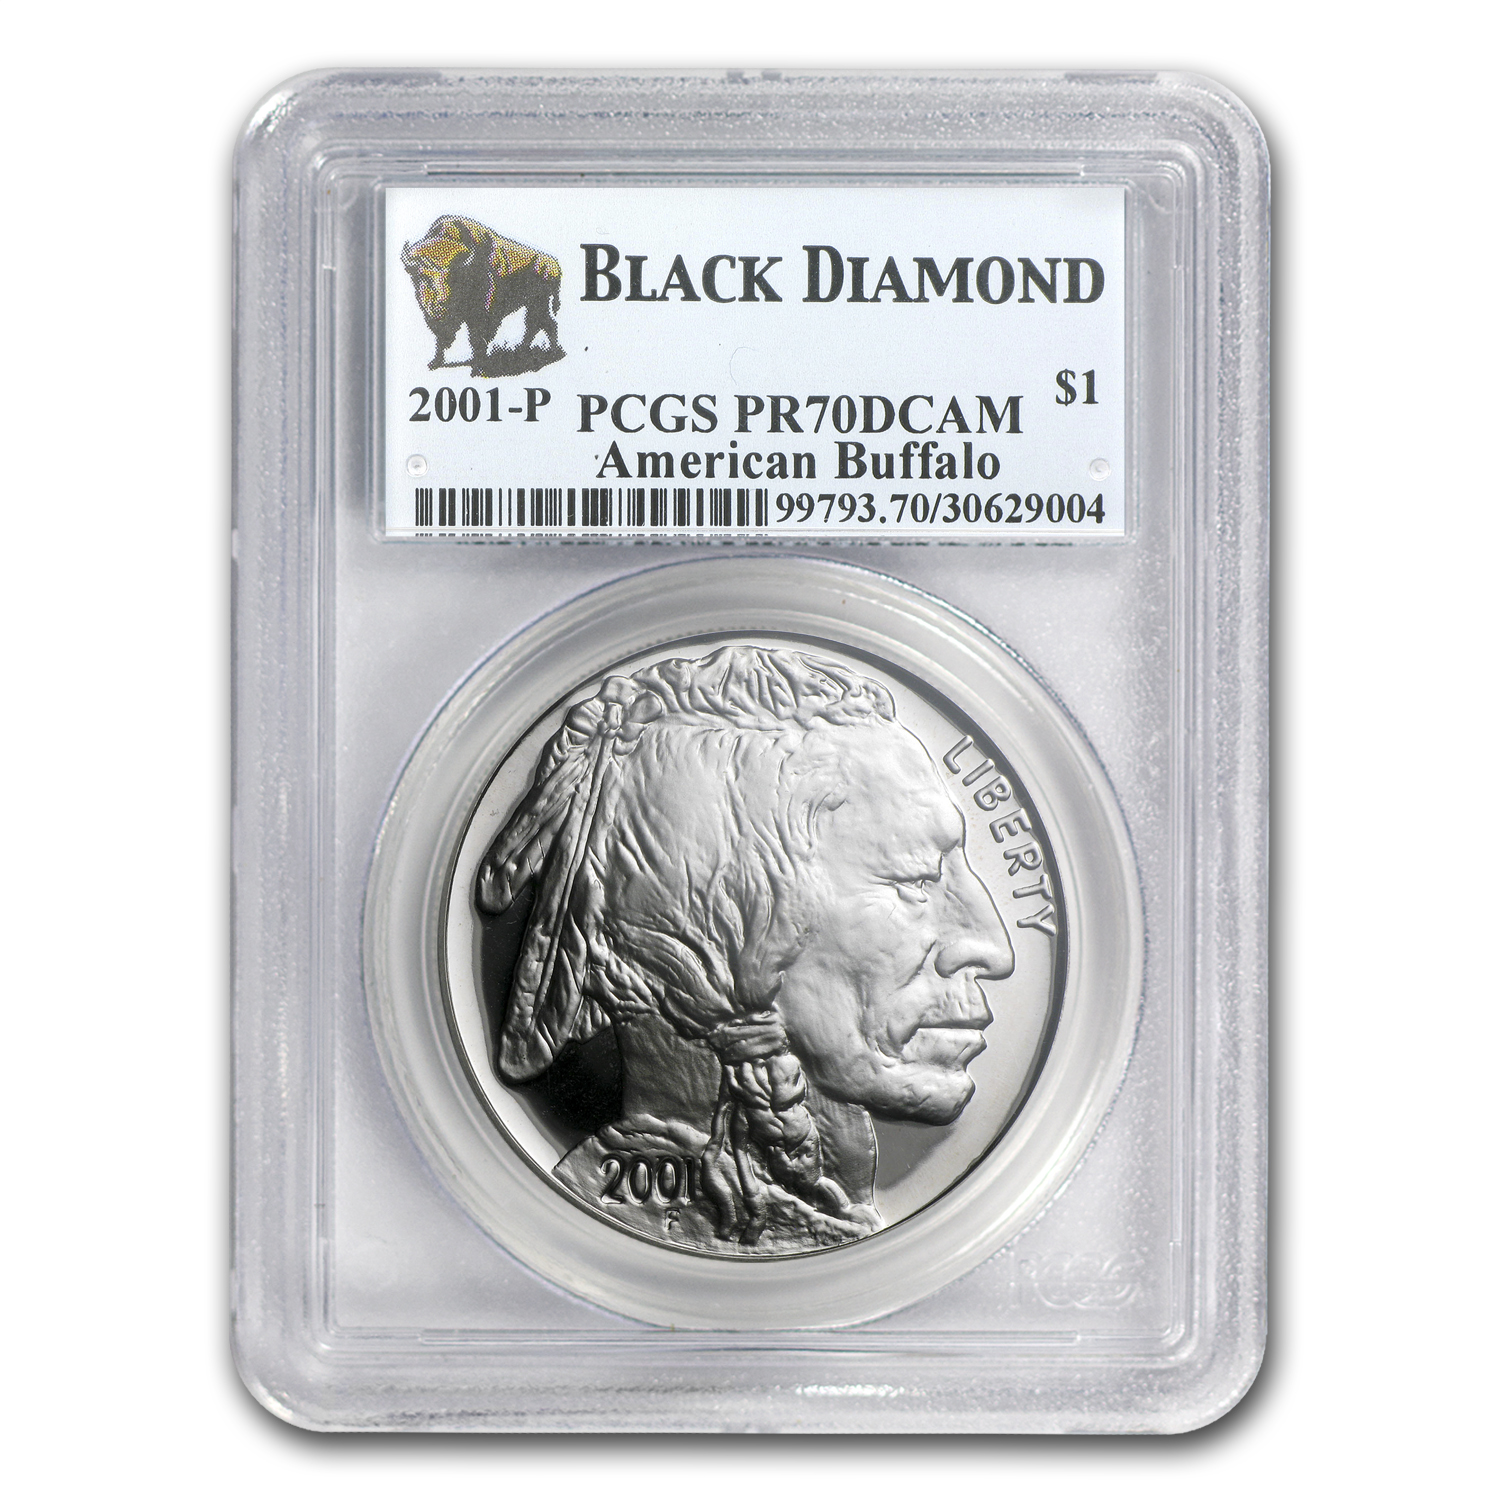 2001-P Buffalo - Black Diamond $1 Silver Commem PR-70 DCAM PCGS